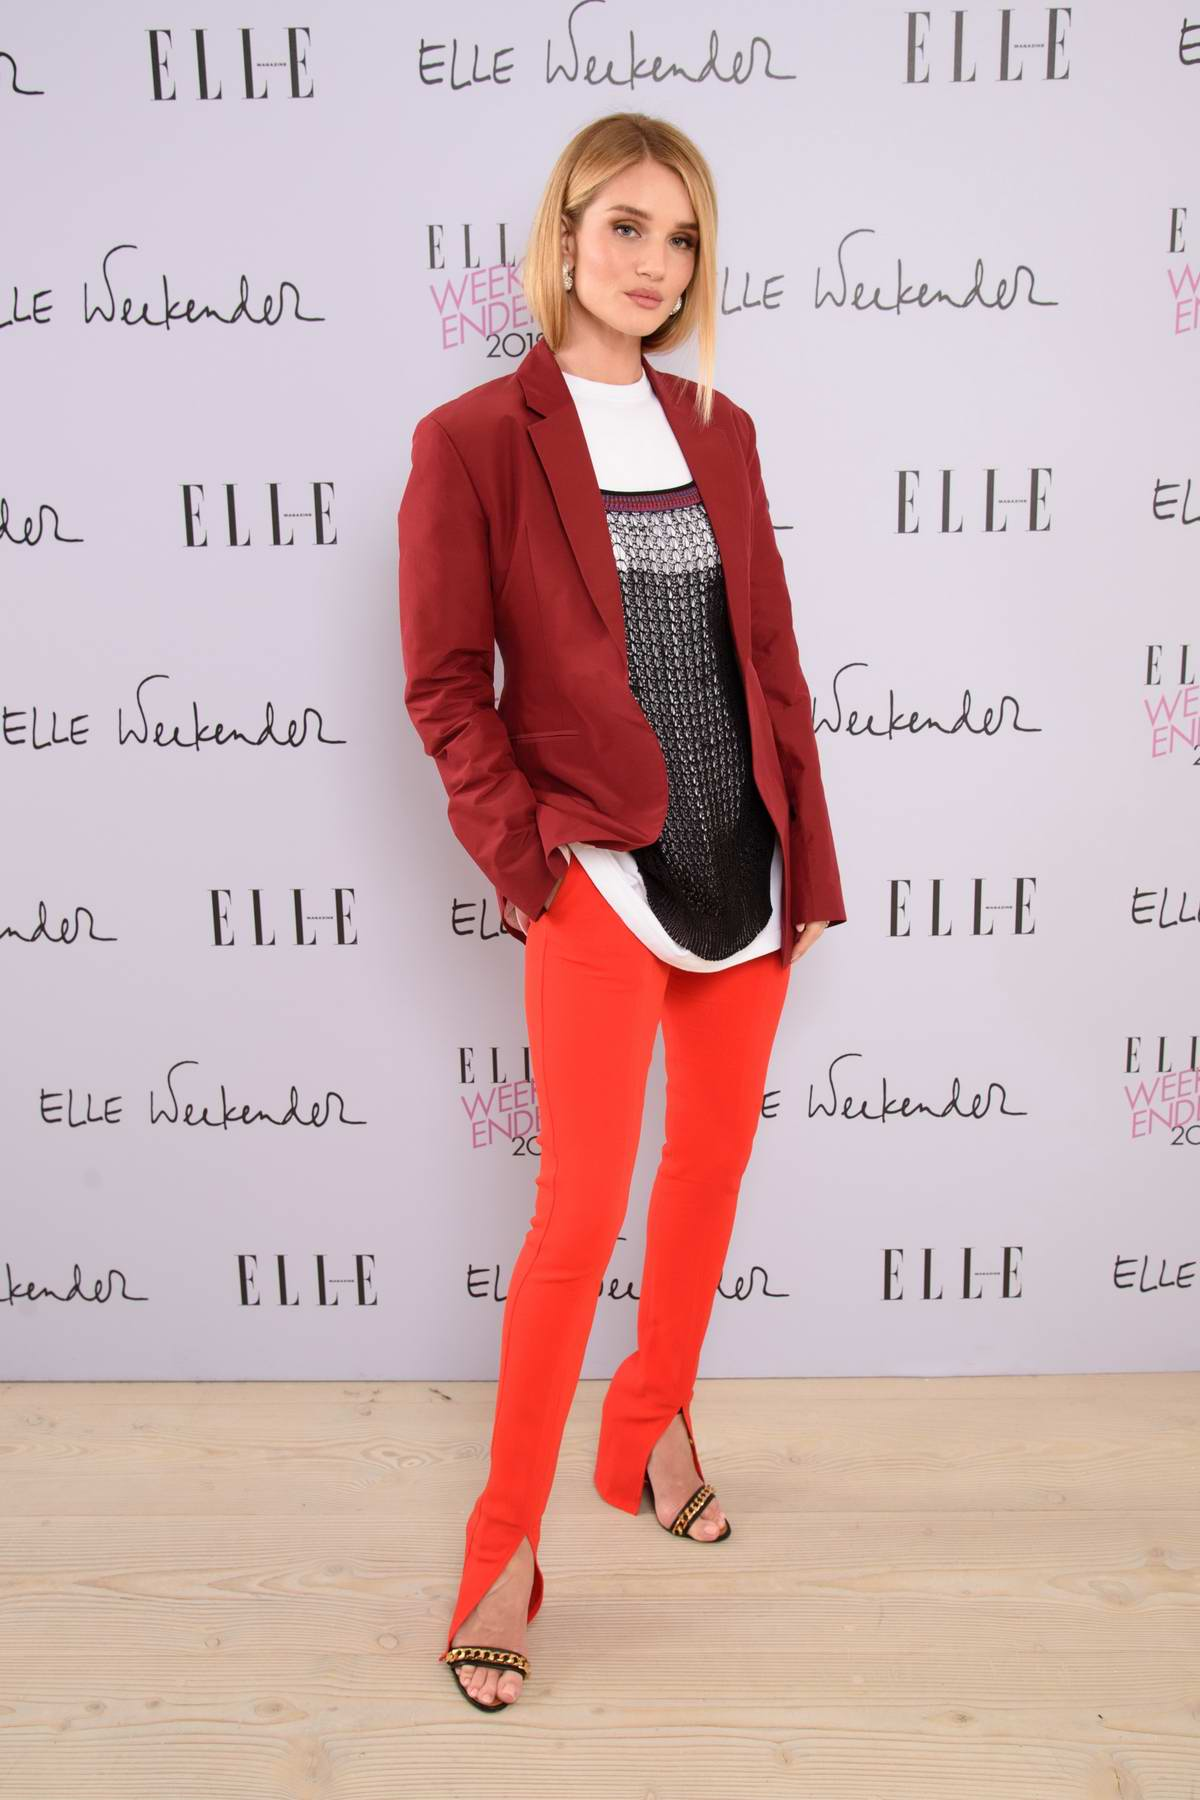 Rosie Huntington Whiteley attends day three of ELLE Weekender at The Saatchi Gallery in London, UK